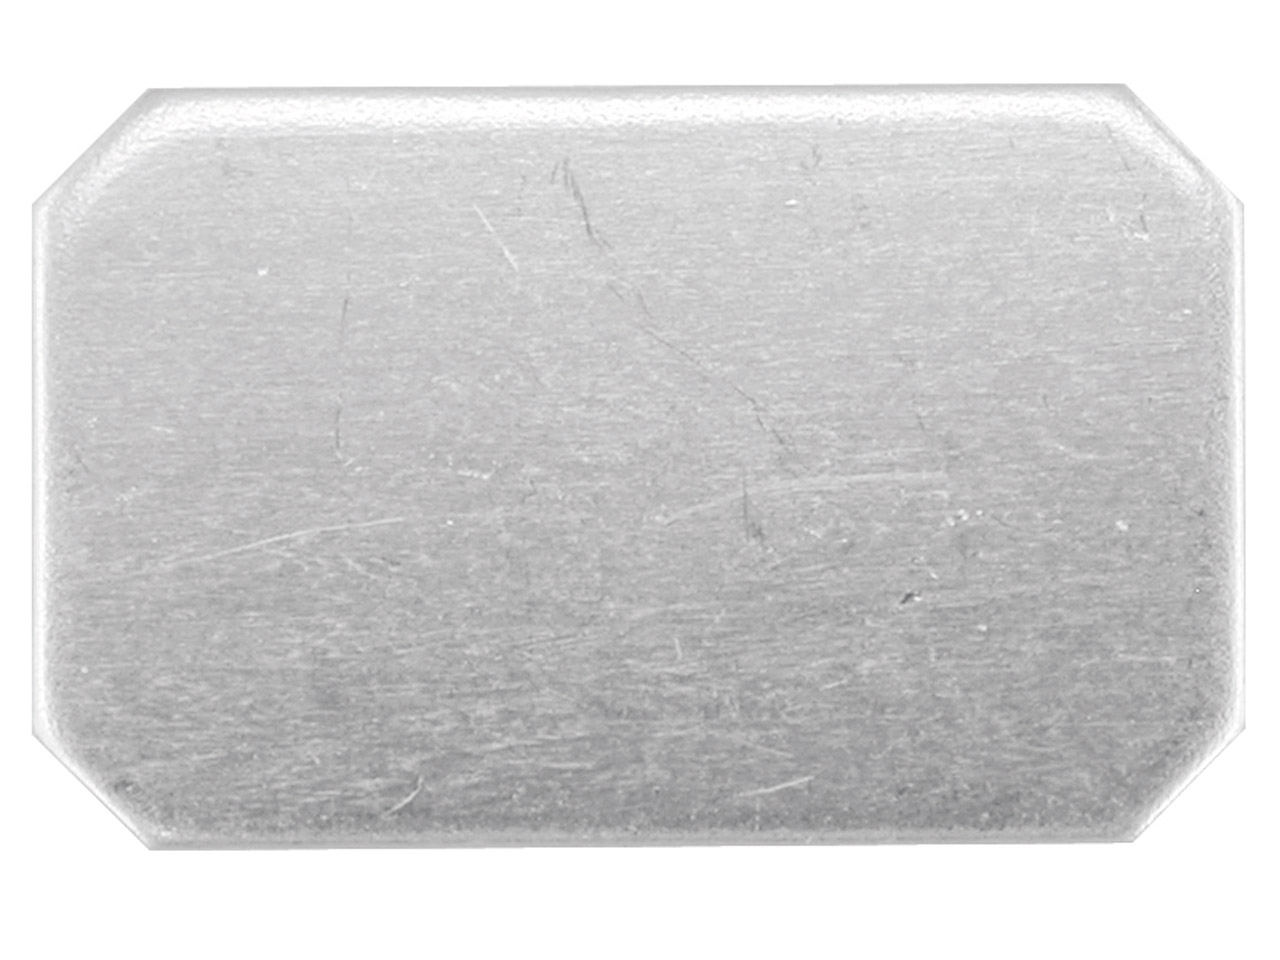 Sterling Silver Blank Kc8233 1.00mm Fully Annealed 17mm X 11mm          Rectangle, Cut Corners